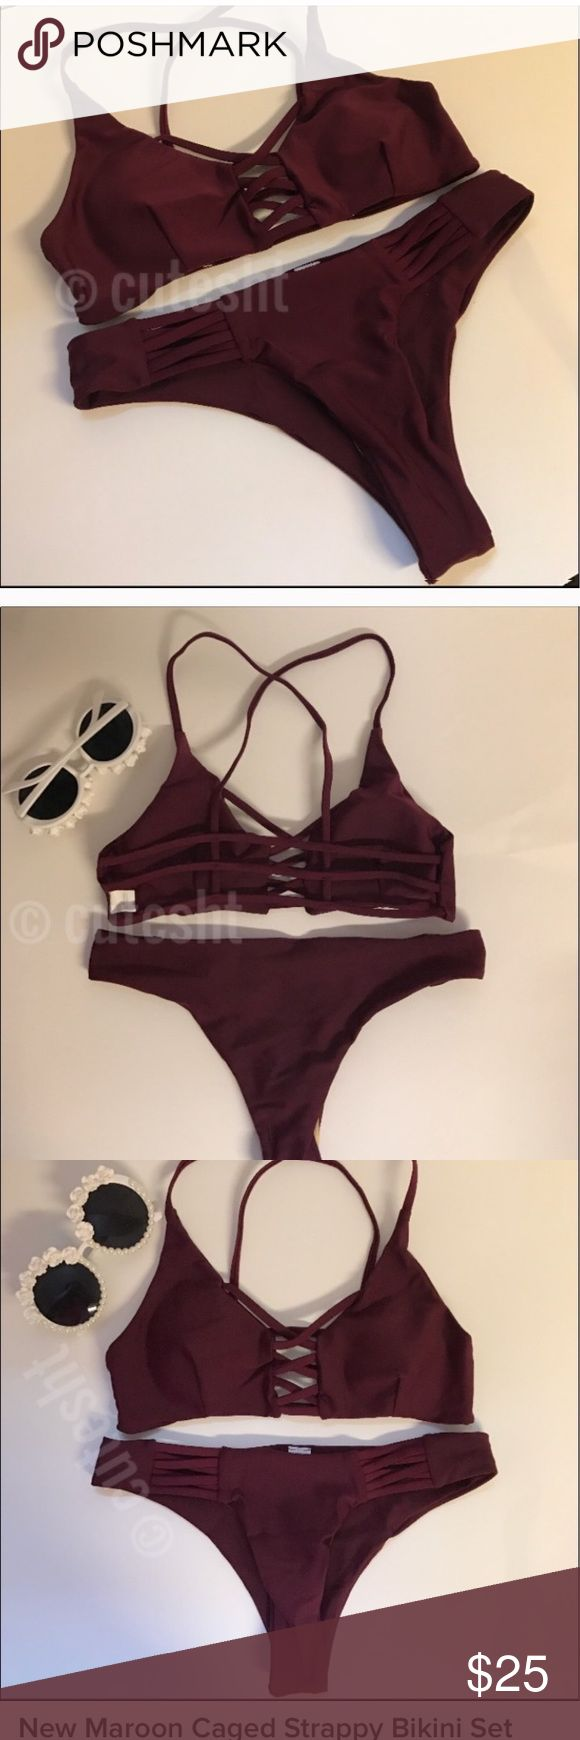 New Maroon Strappy Caged Cheeky Bikini Set Top and bottoms both true size small (4-6). Top has removable padding and can fit up to petite C. Bottoms are Cheeky and stretch. SHIPS FAST! :)  All photos with logos on it taken by myself* Swim Bikinis